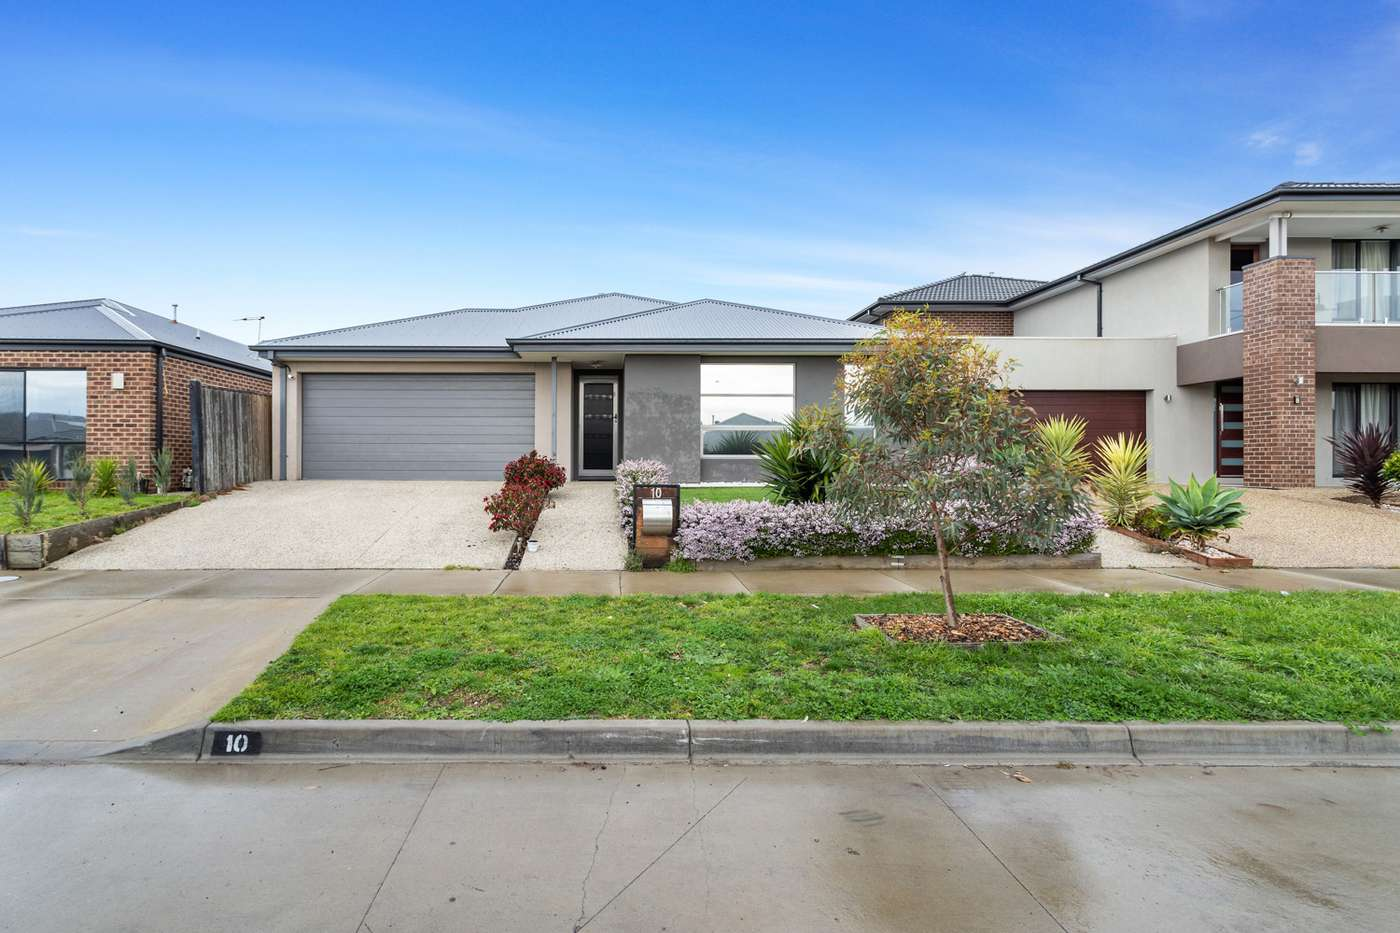 Main view of Homely house listing, 10 Verve Circuit, Cranbourne West, VIC 3977